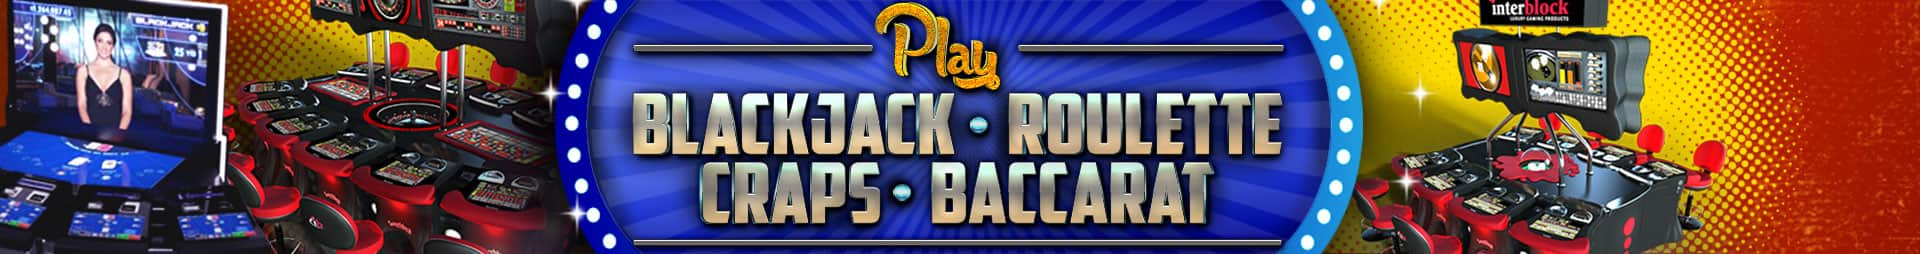 Banner. Play blackjack, roulette, craps and baccarat.